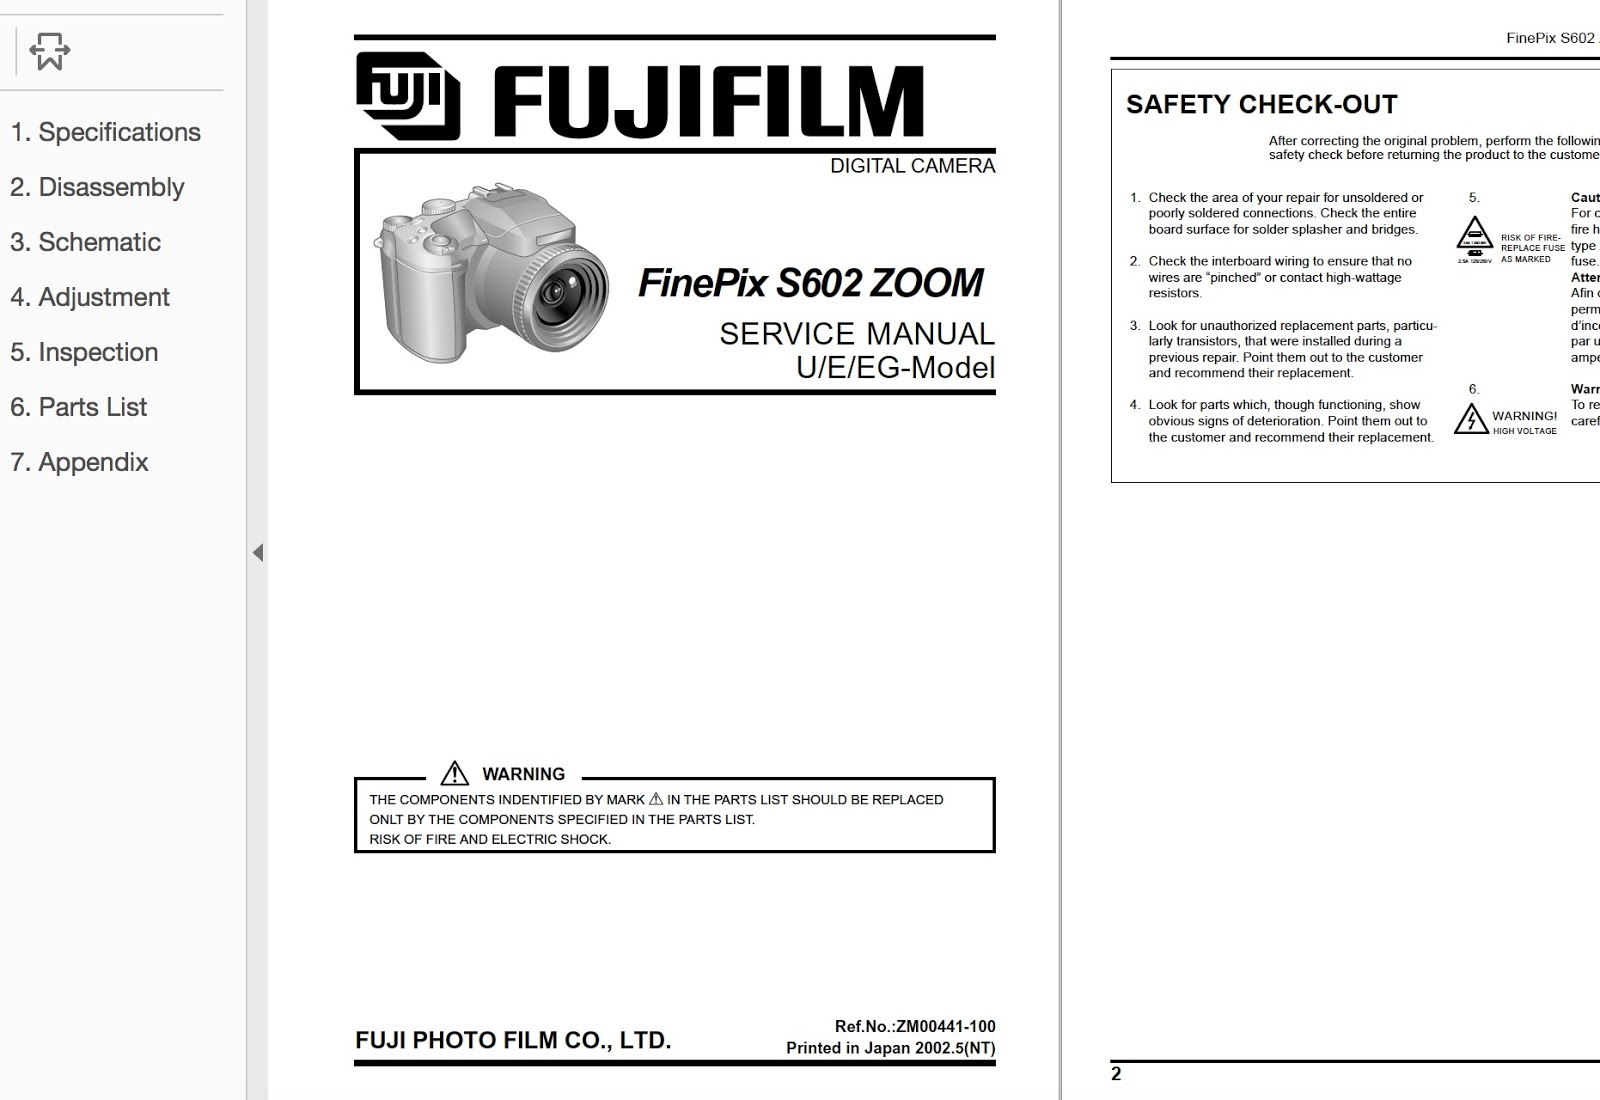 FUJIFILM FinePix S602 Zoom Digital Camera Service Repair Manual